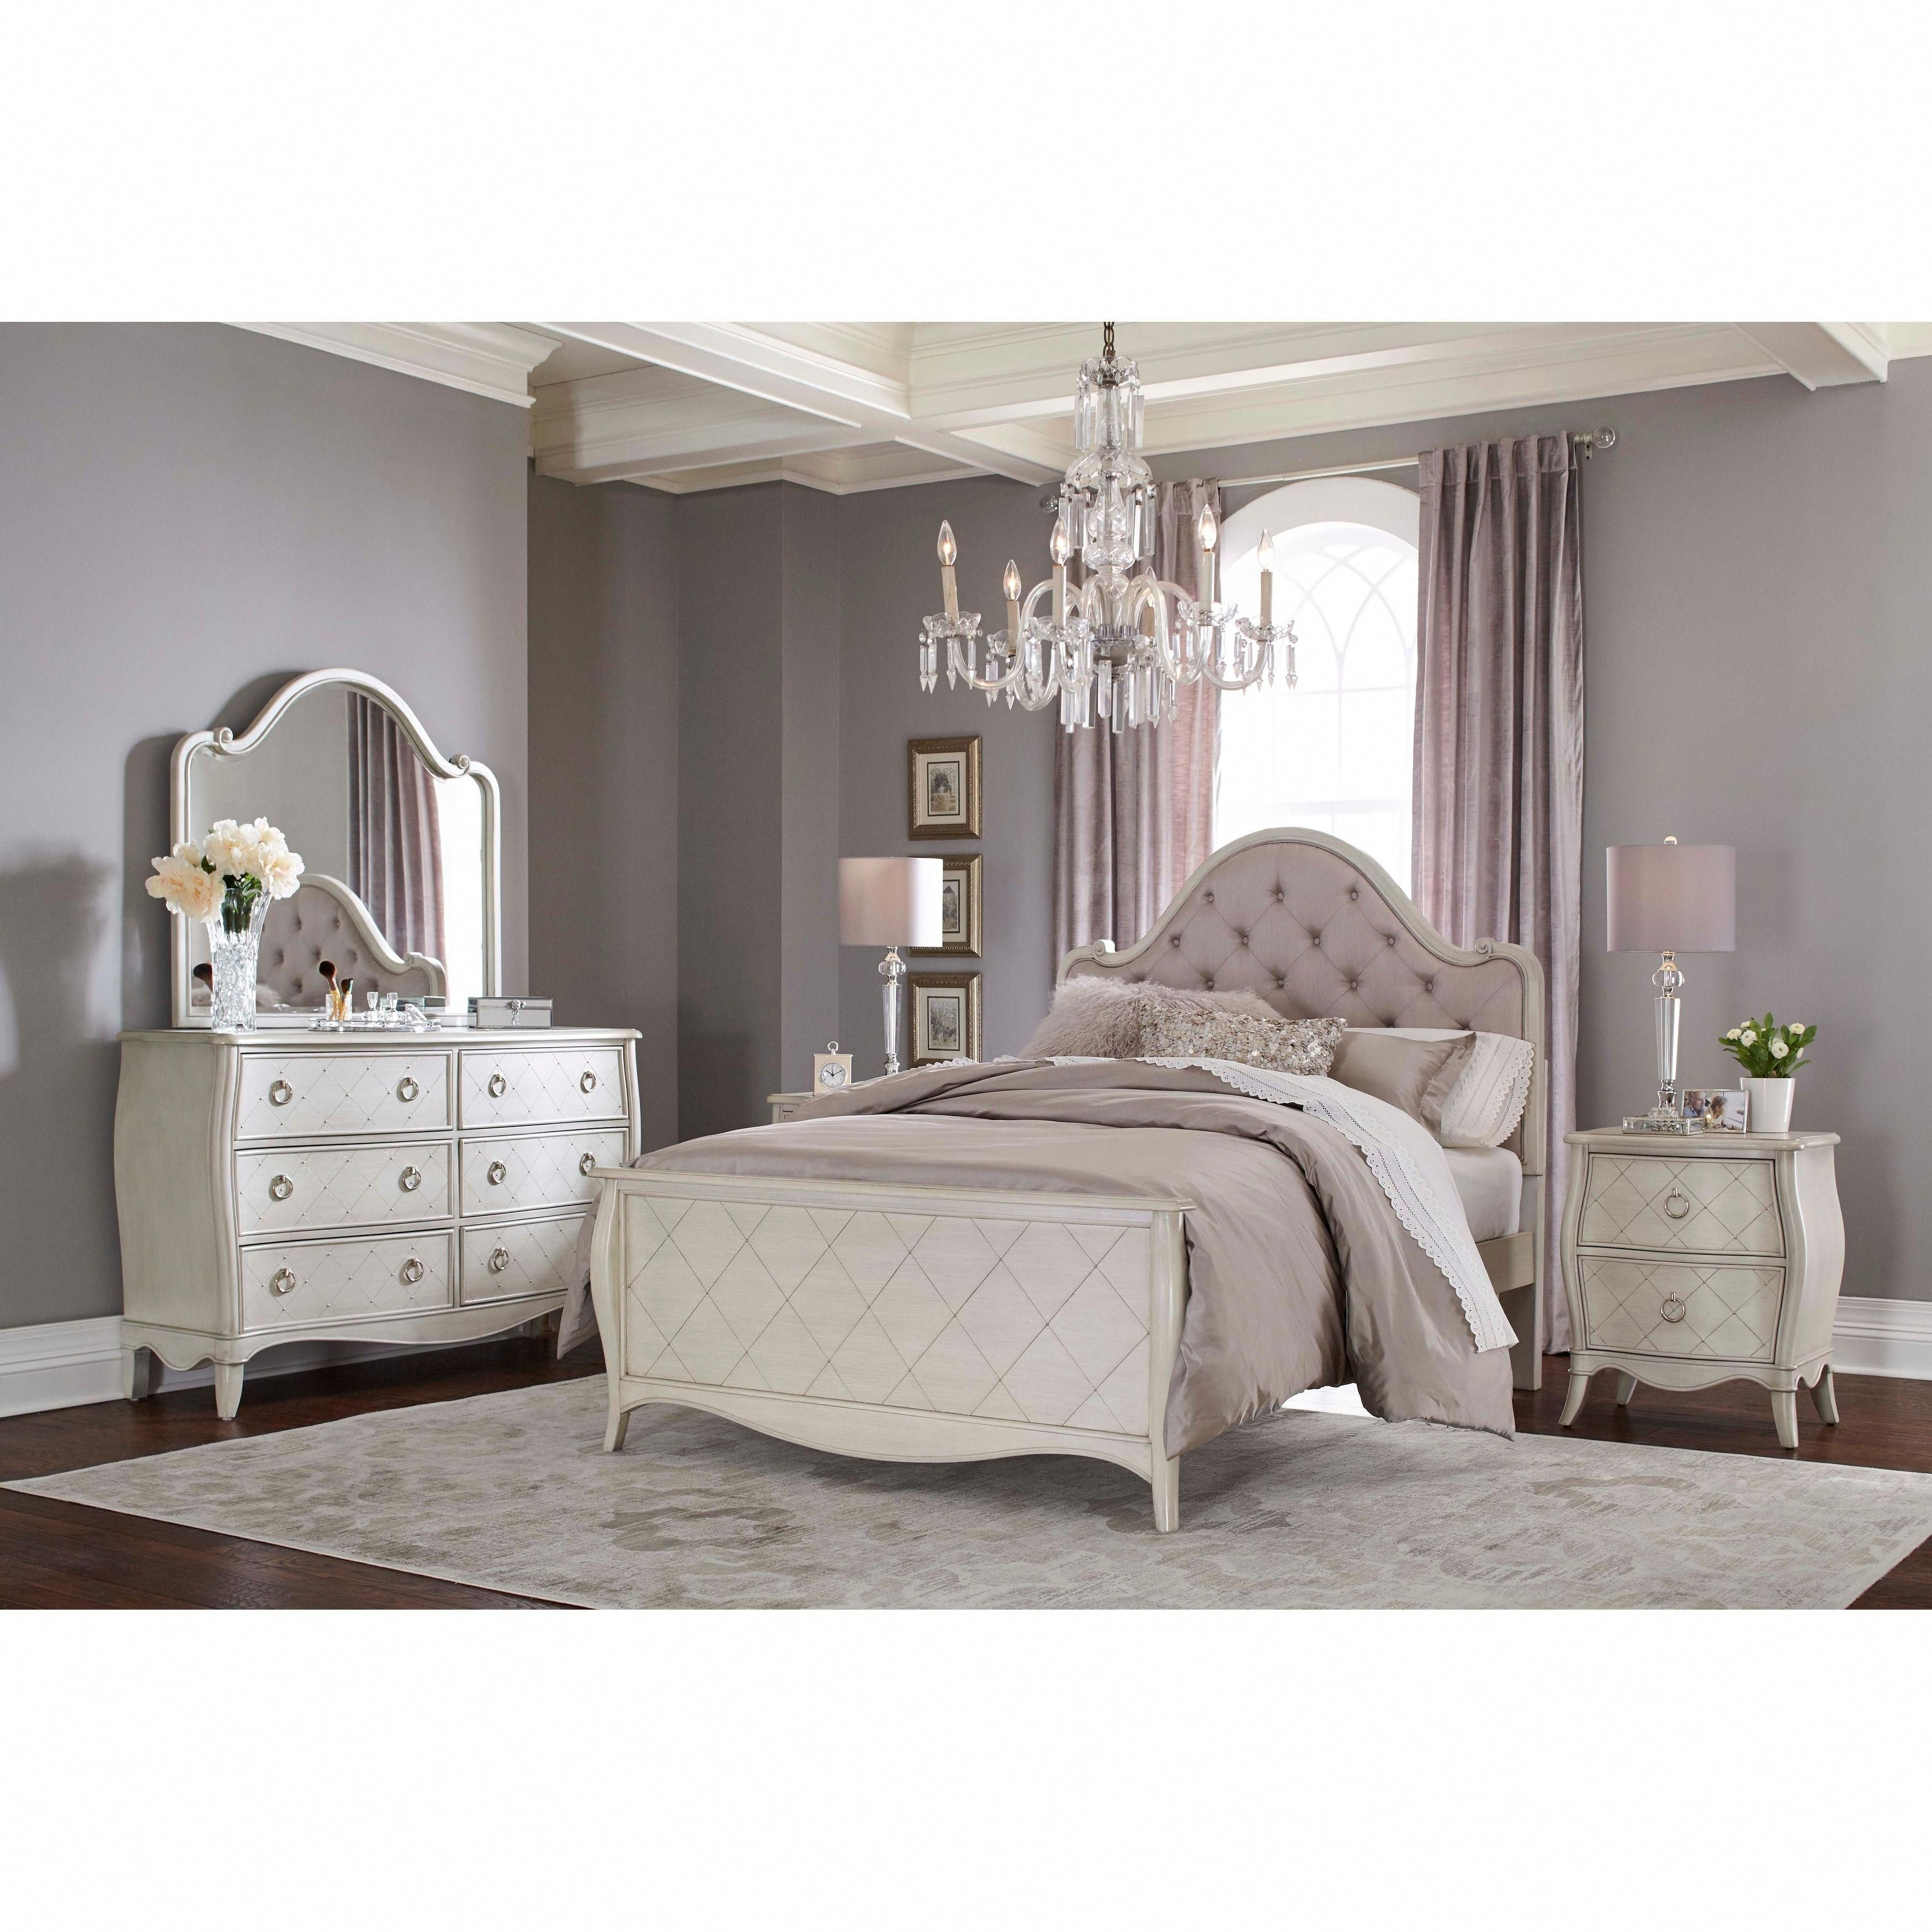 Shipping Furniture To Hawaii Furnitureshippingcrosscountry In 2020 Upholstered Beds Furniture Gold Bedroom Decor